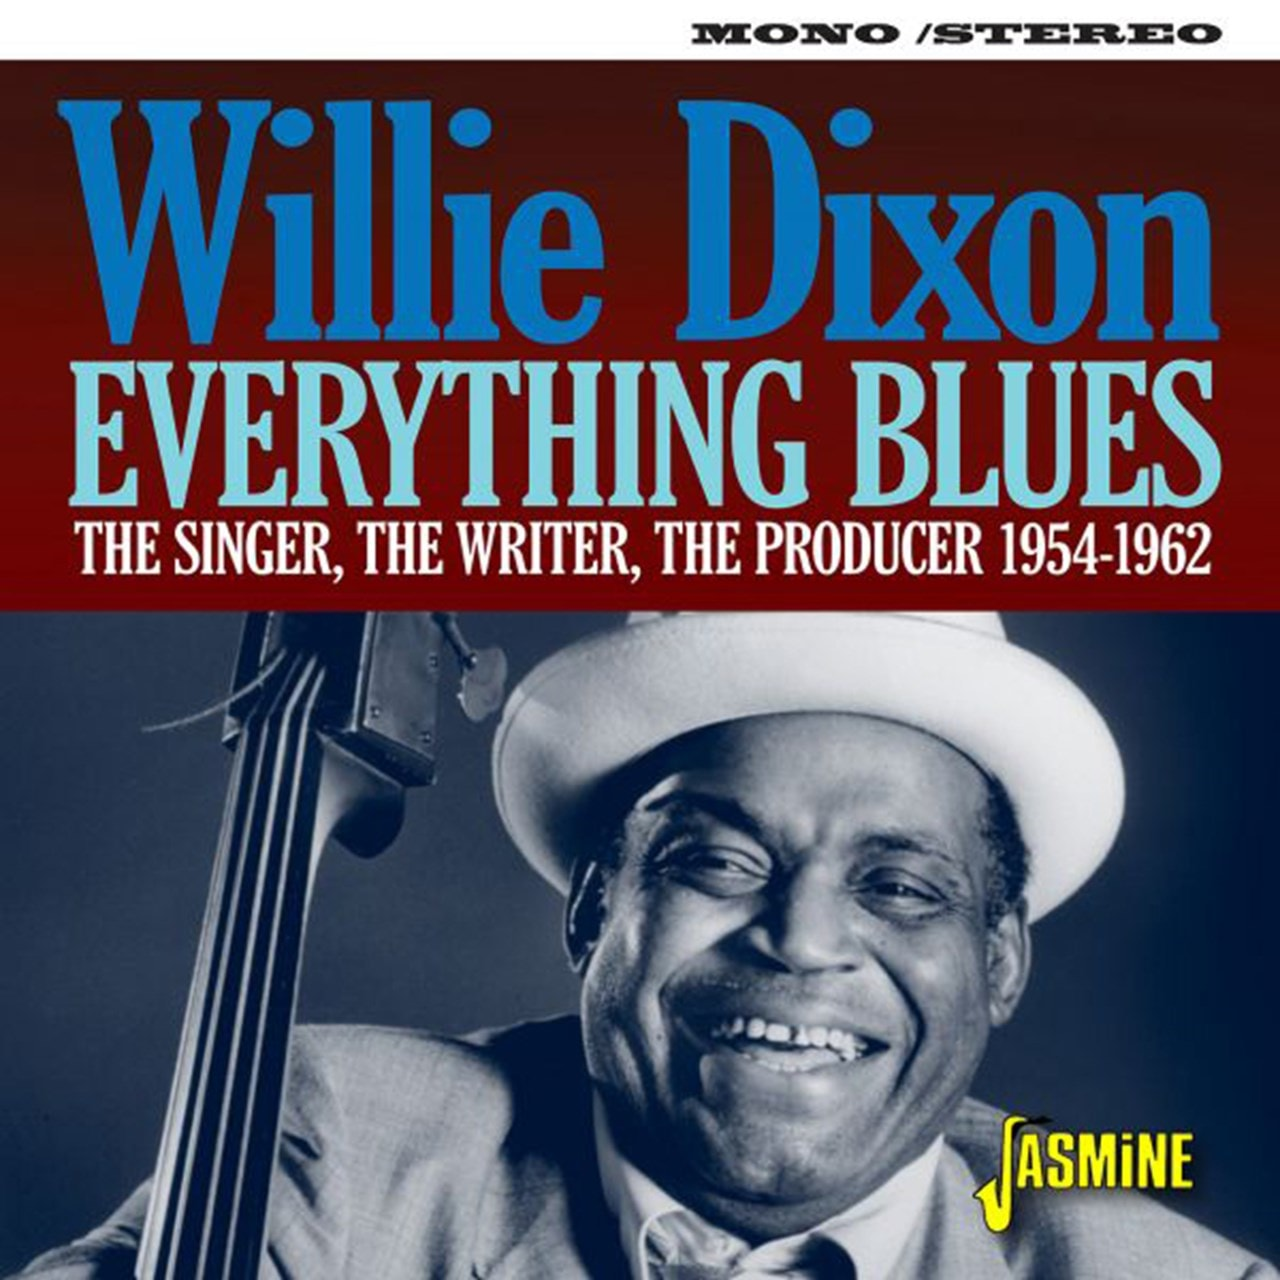 Everything Blues: The Singer, the Writer, the Producer 1954-1962 - 1